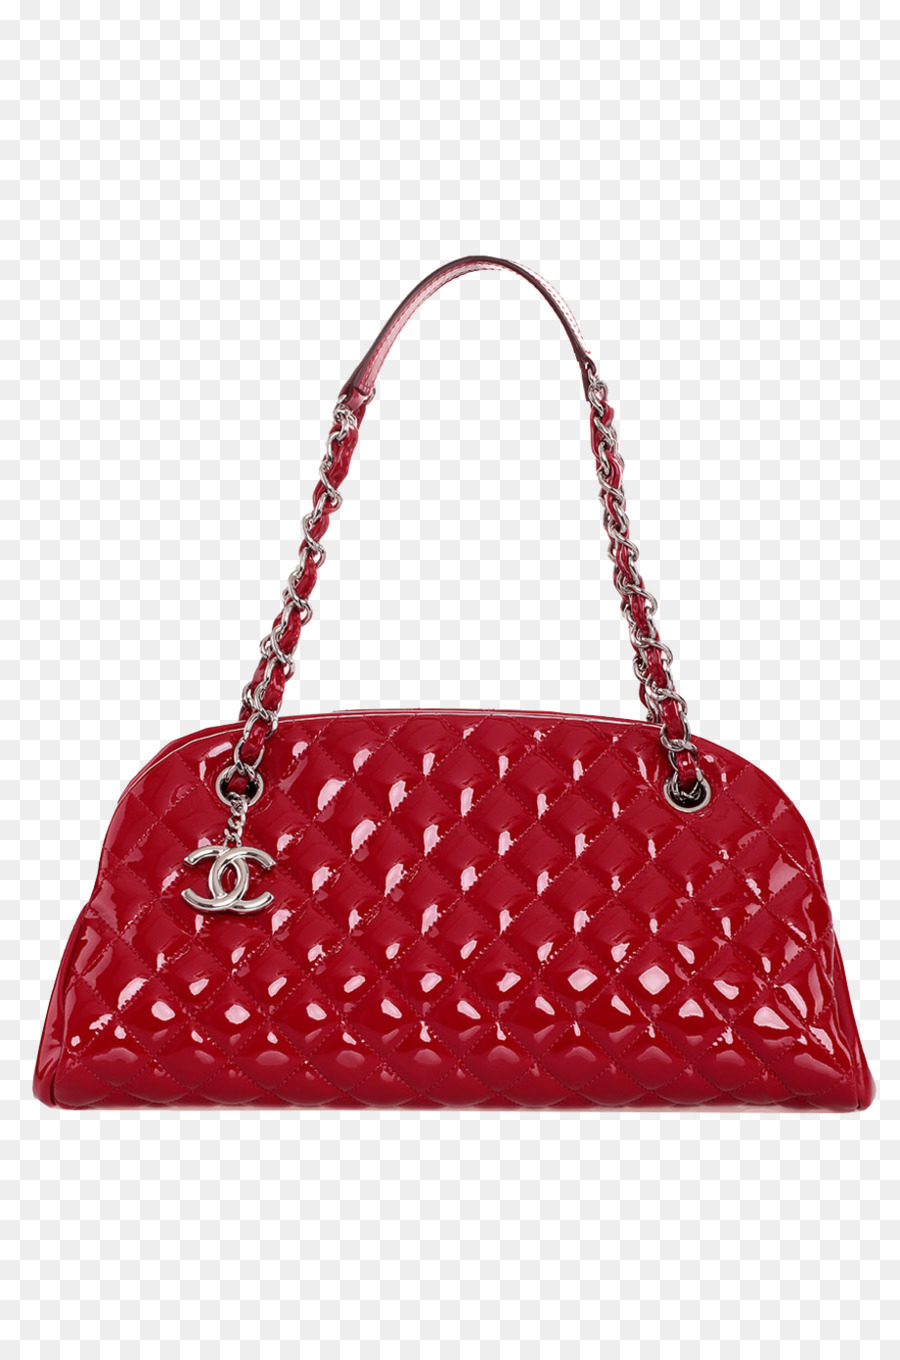 fd3f7aa63035 Chanel Tote bag Leather Handbag - CHANEL red patent leather bag png ...